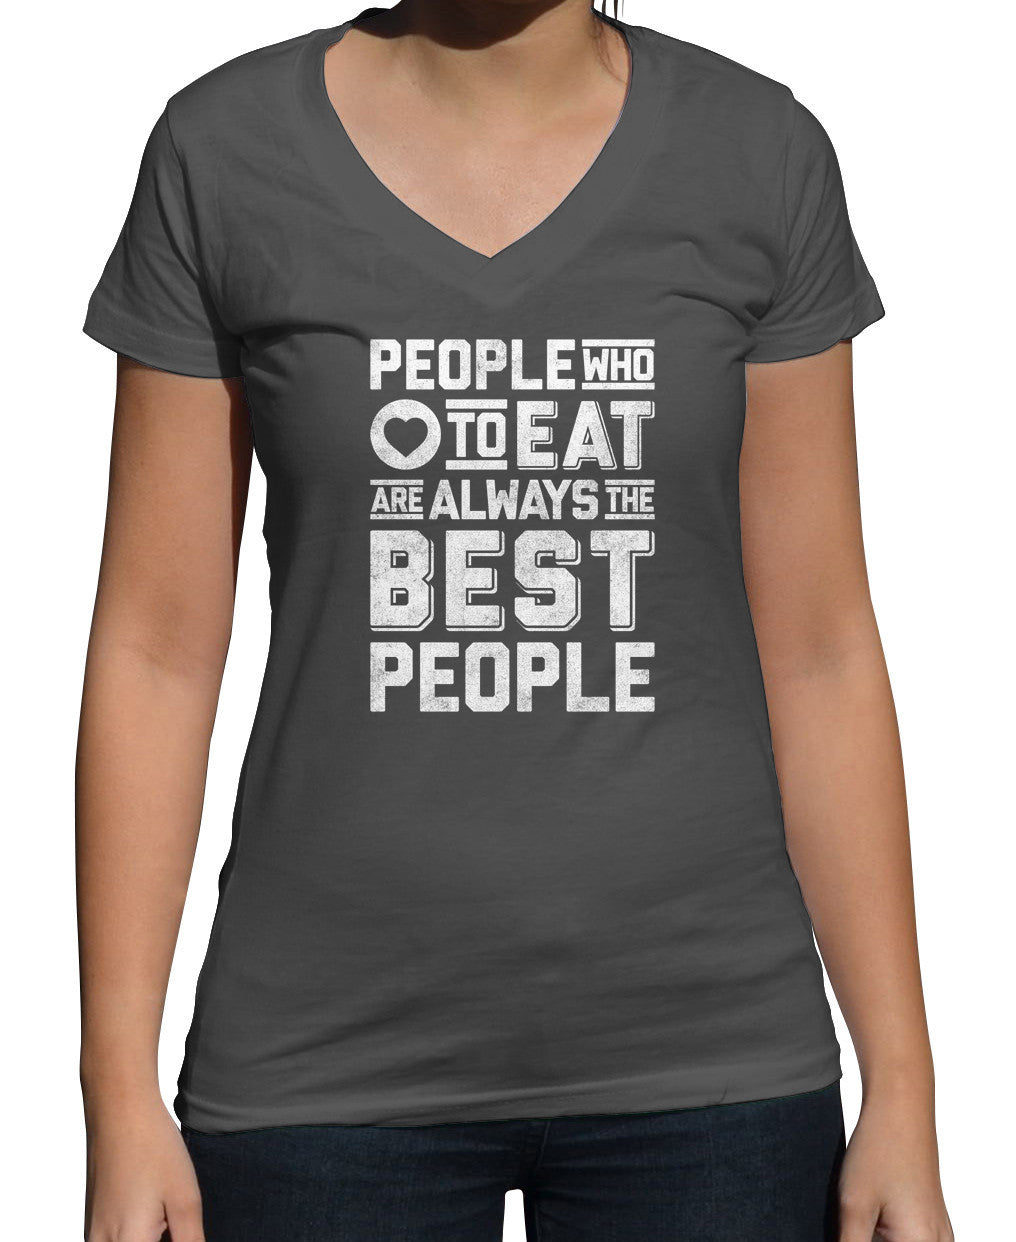 Women's People Who Love to Eat Are Always the Best People Vneck T-Shirt - Juniors Fit